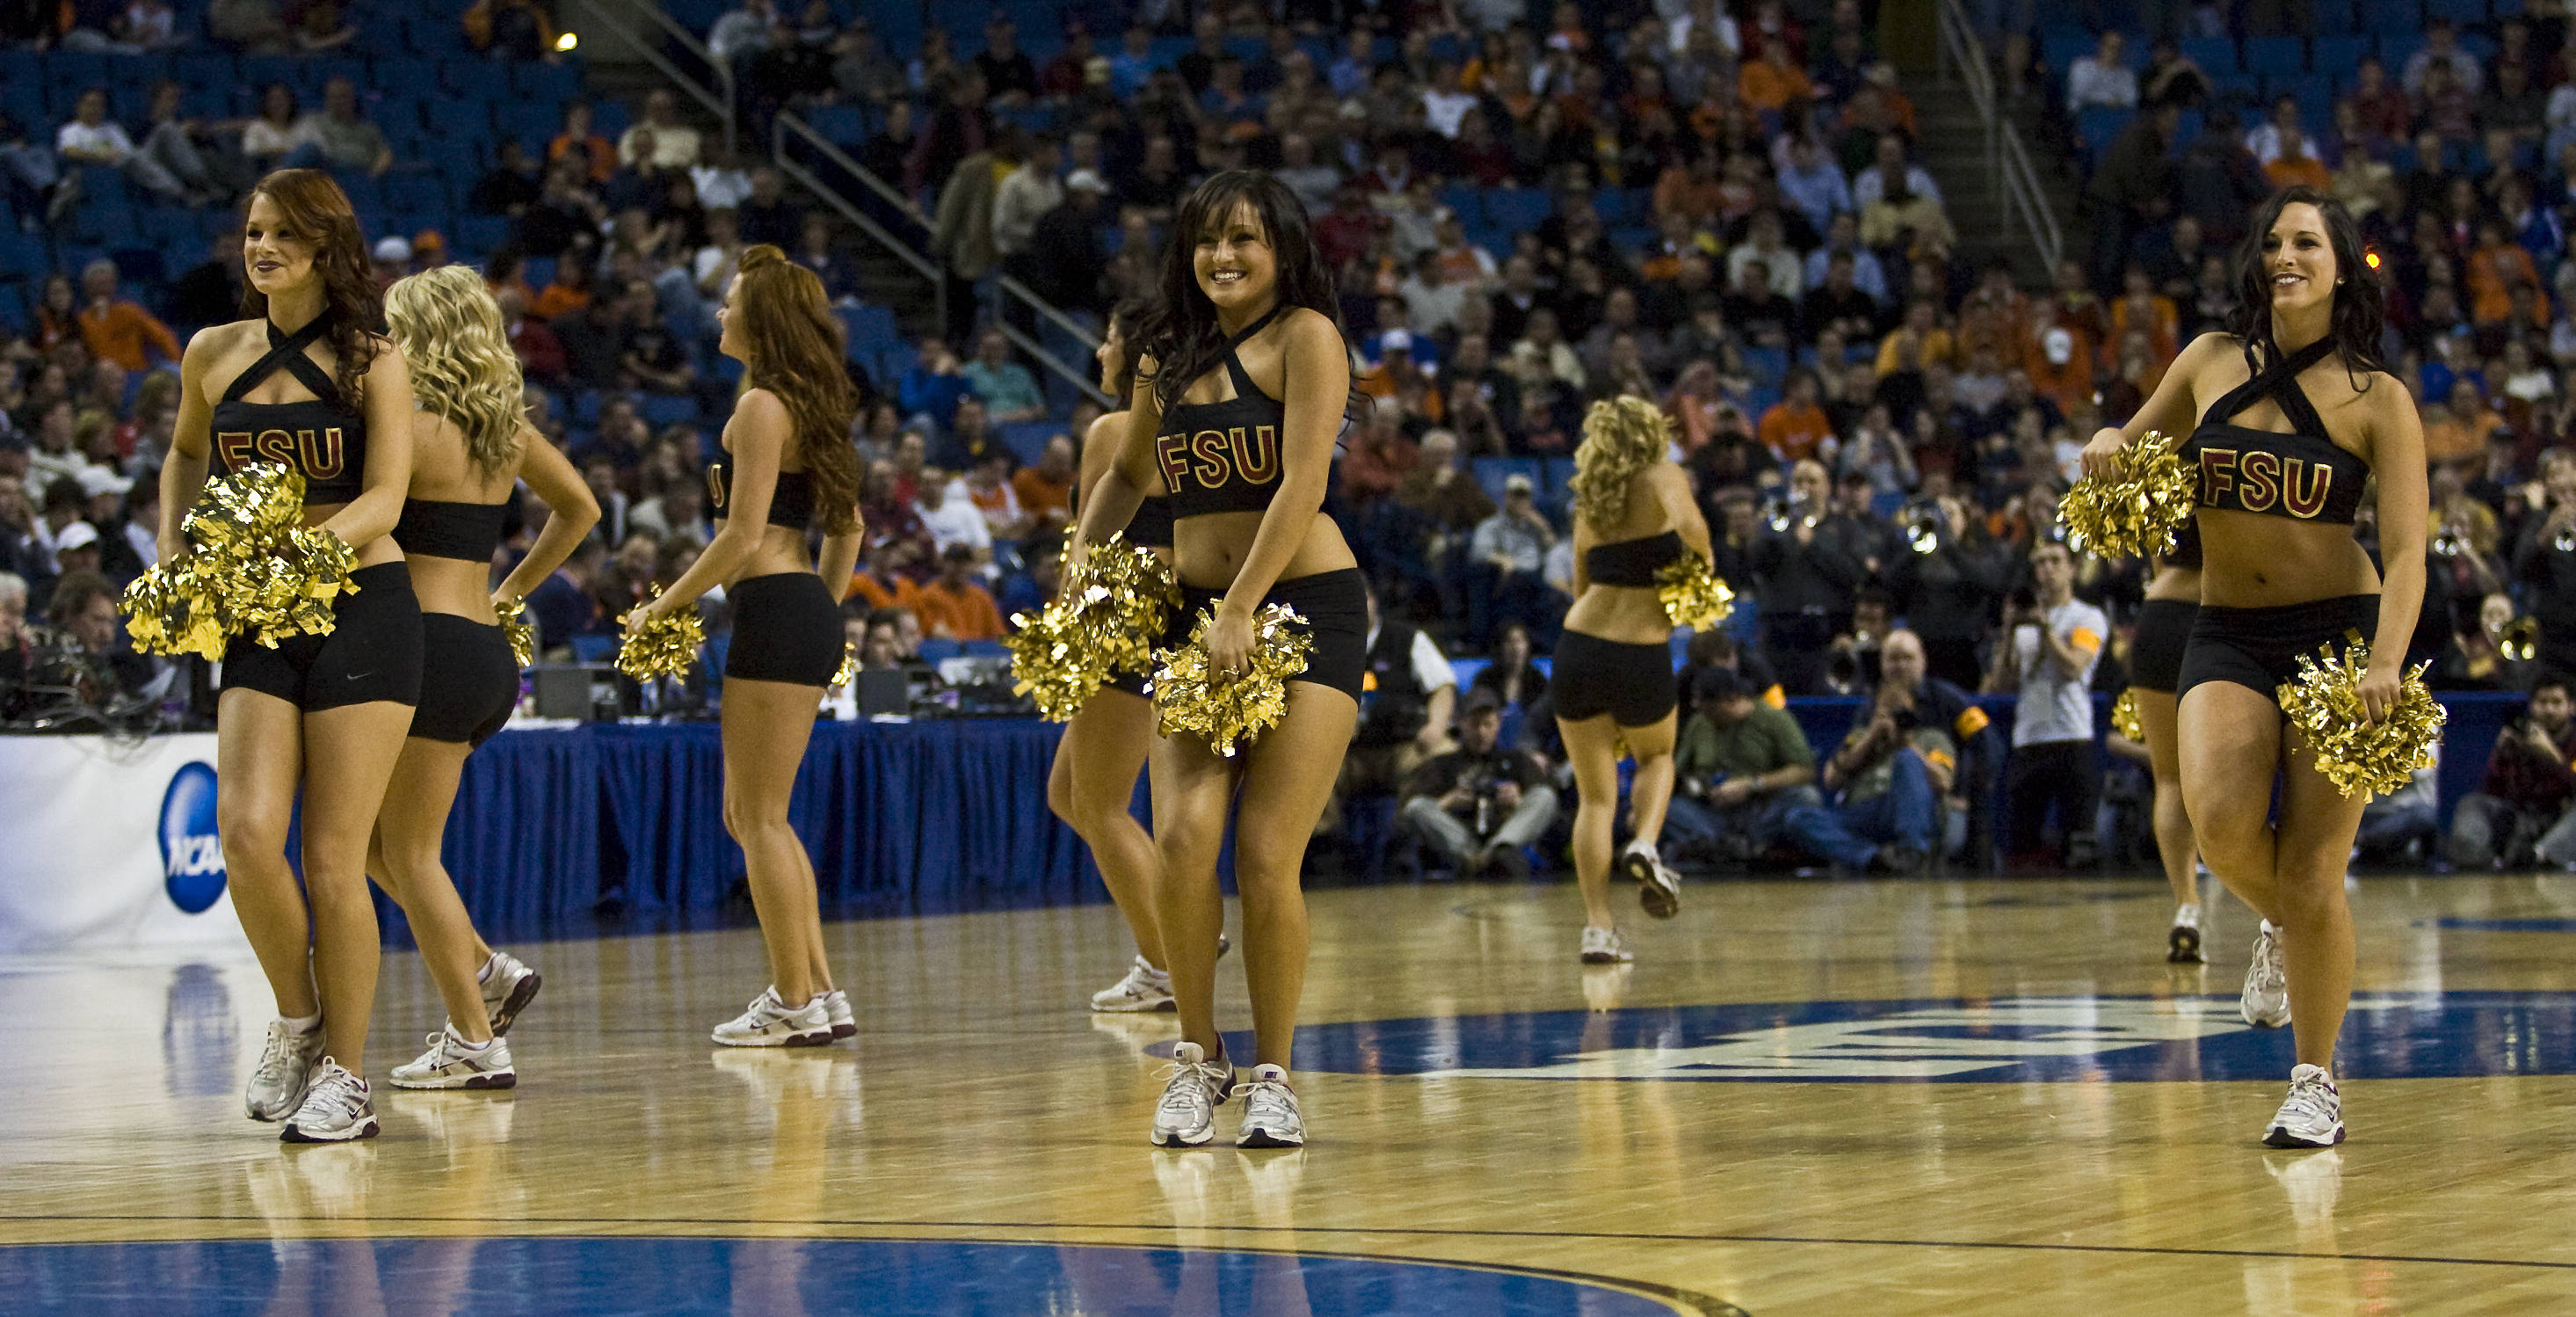 2010 NCAA Basketball Tournament vs. Gonzaga